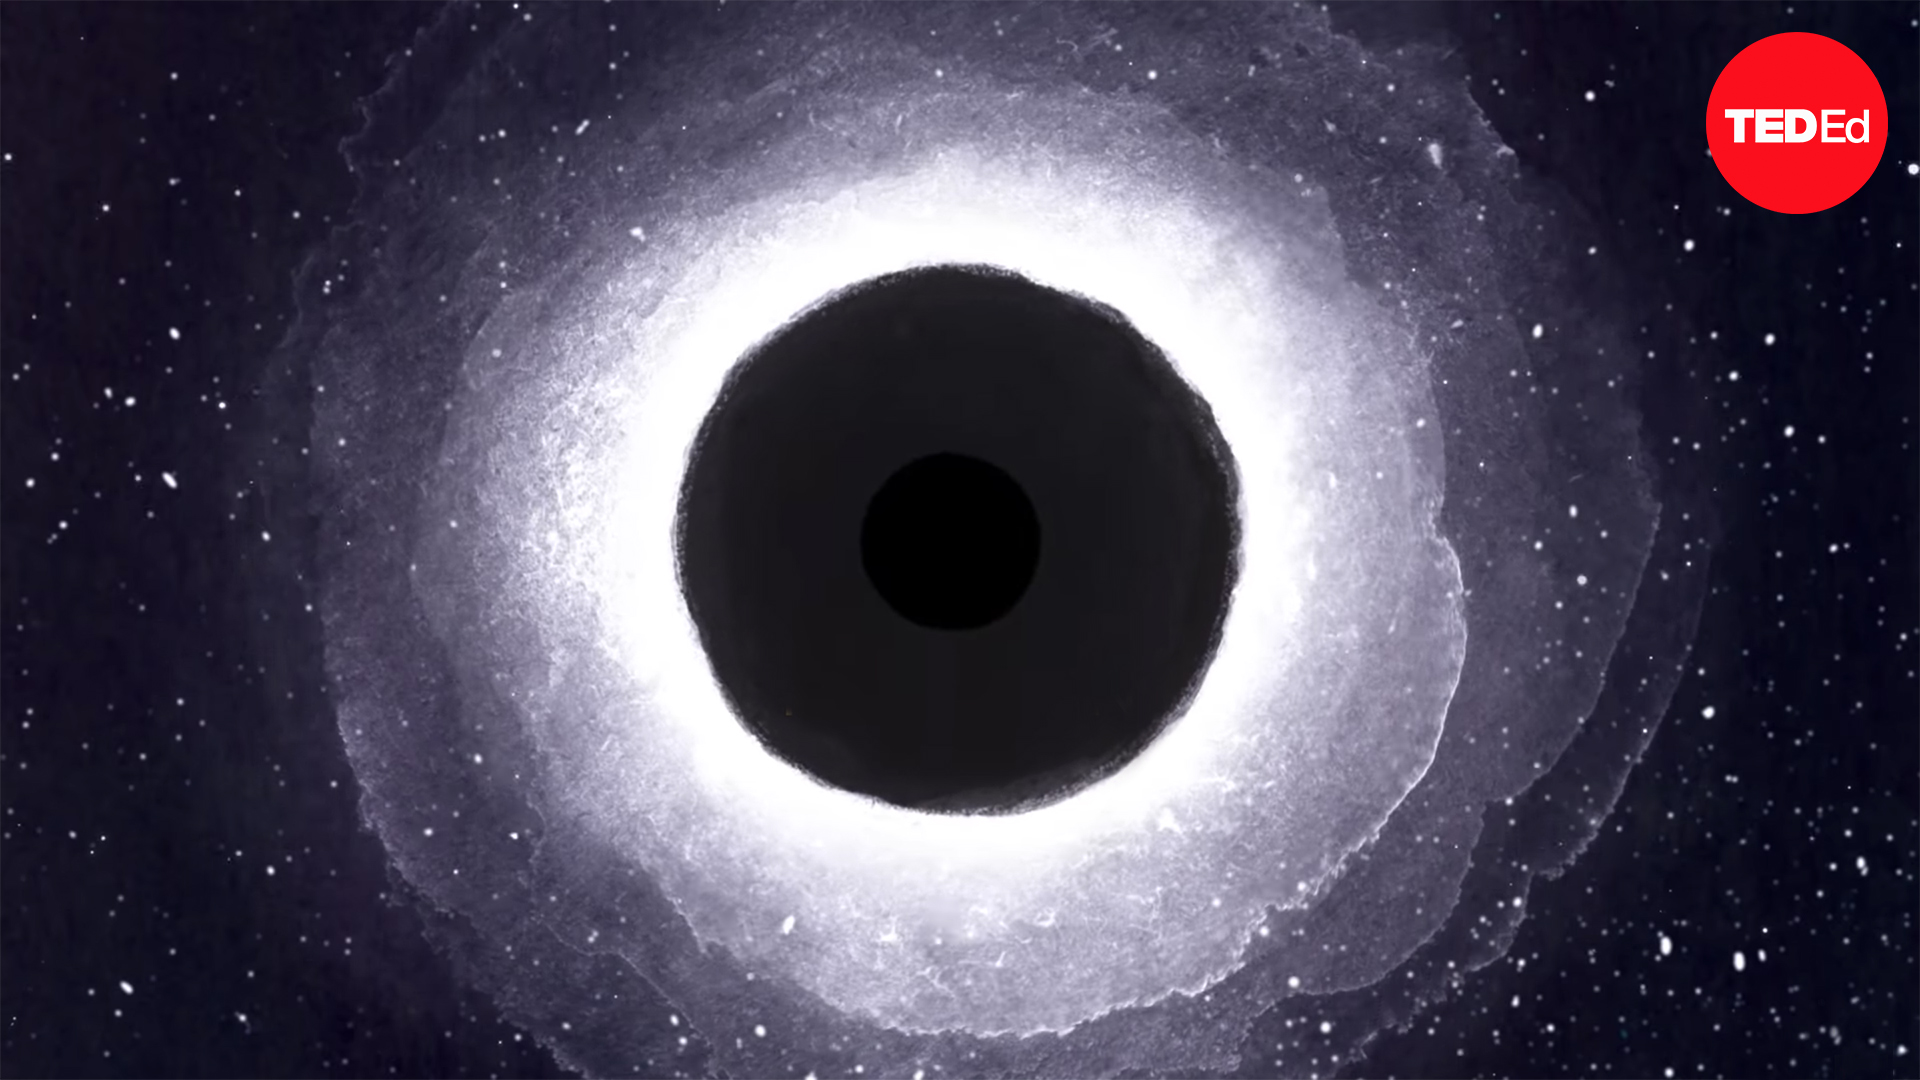 Could the Earth be swallowed by a black hole?